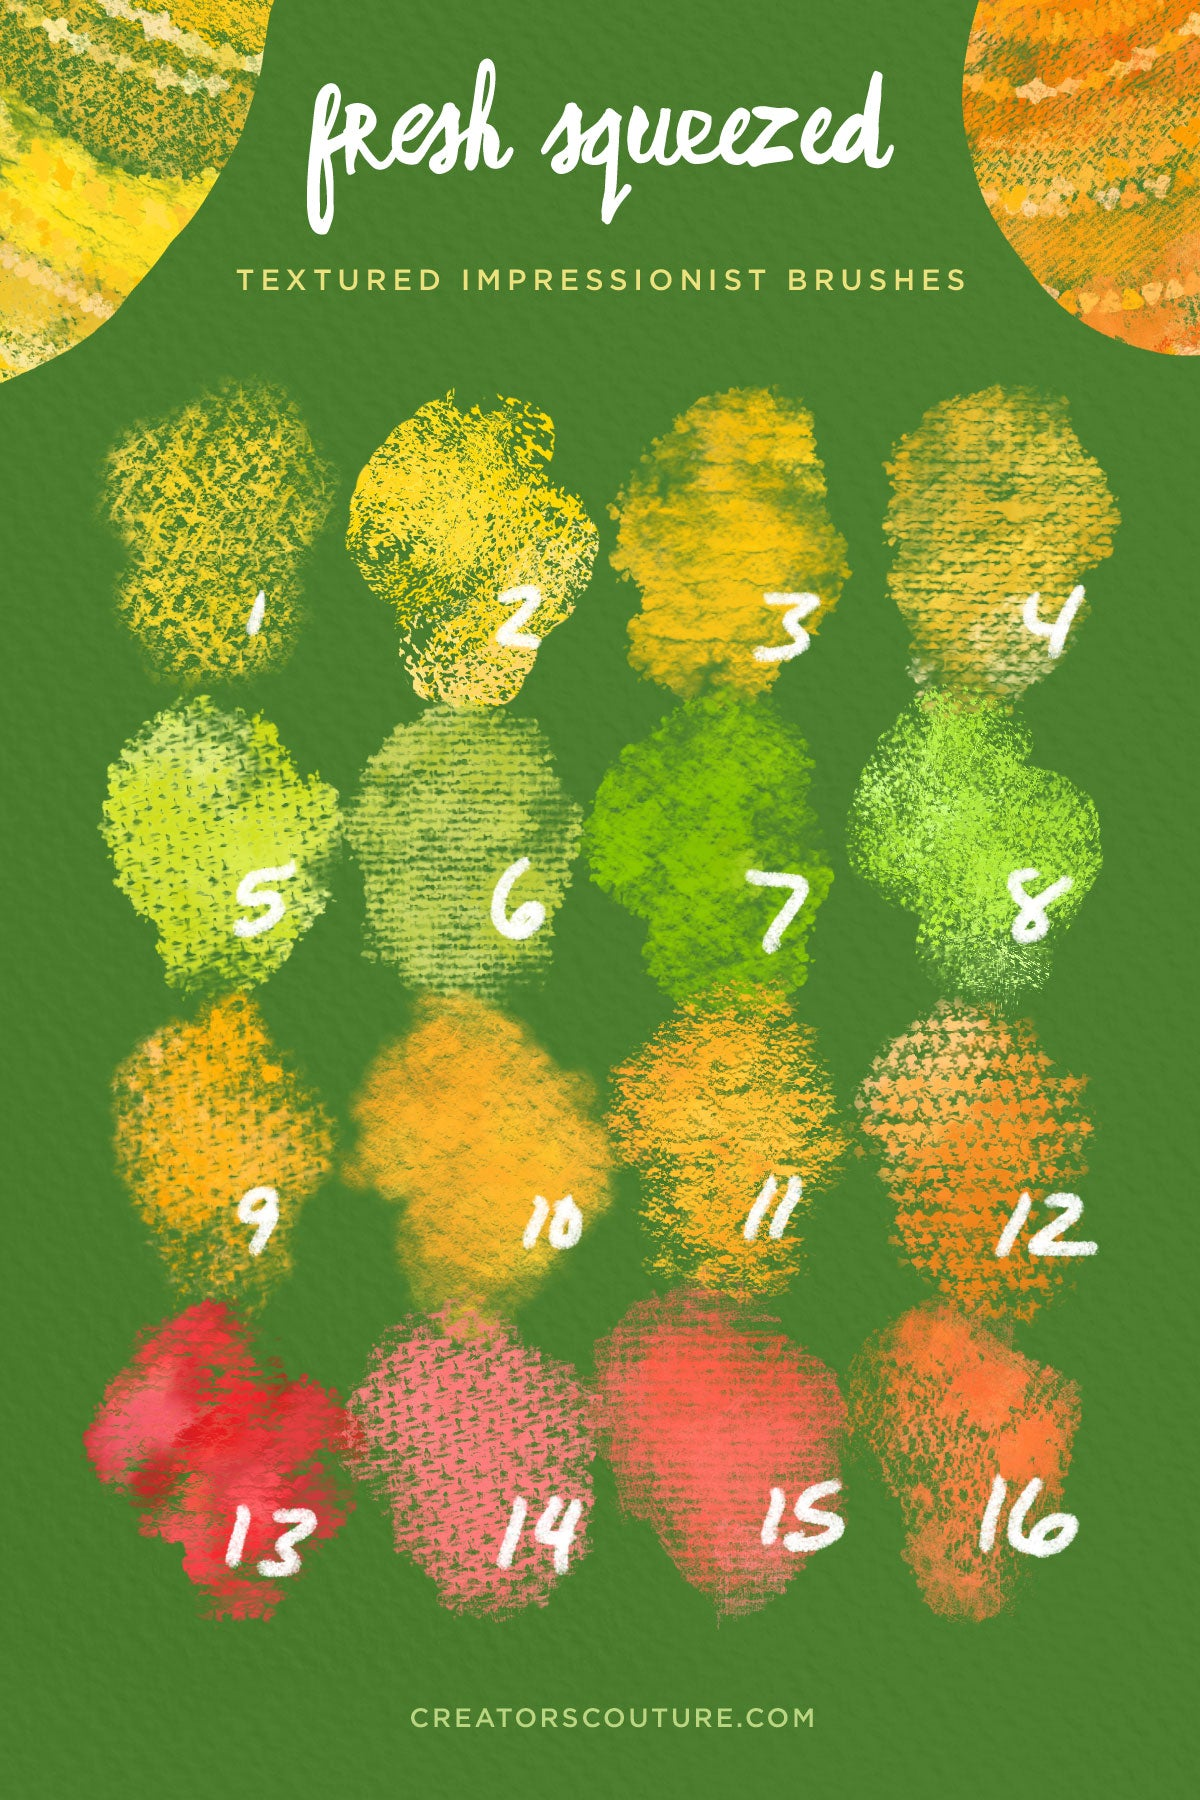 citrus texture photoshop brushes